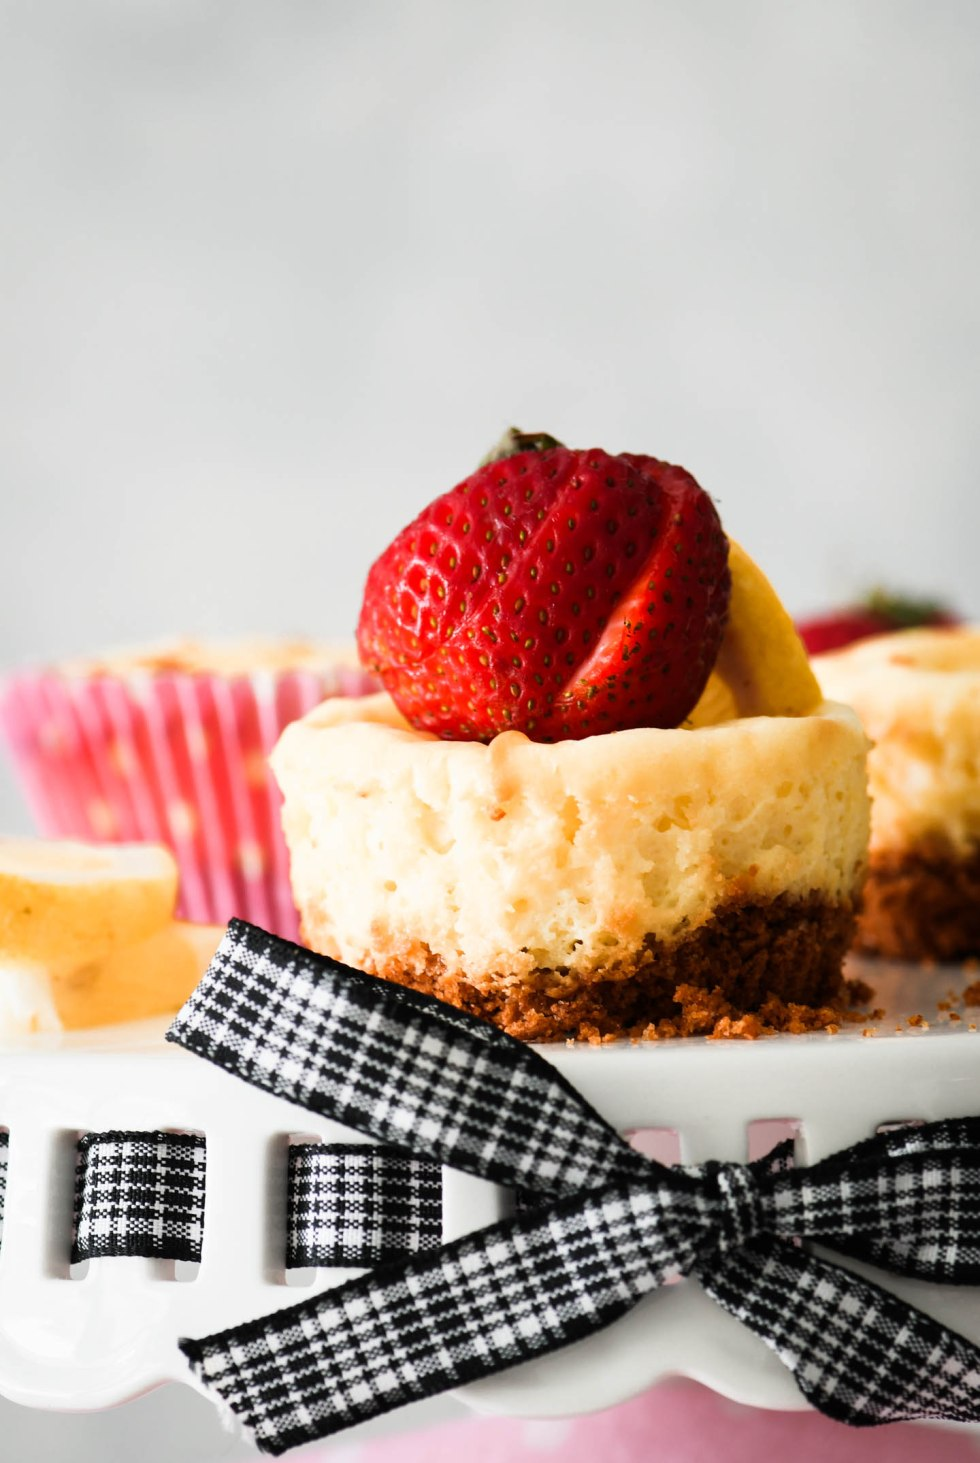 Individual min lemon cheesecake topped with a sliced strawberry